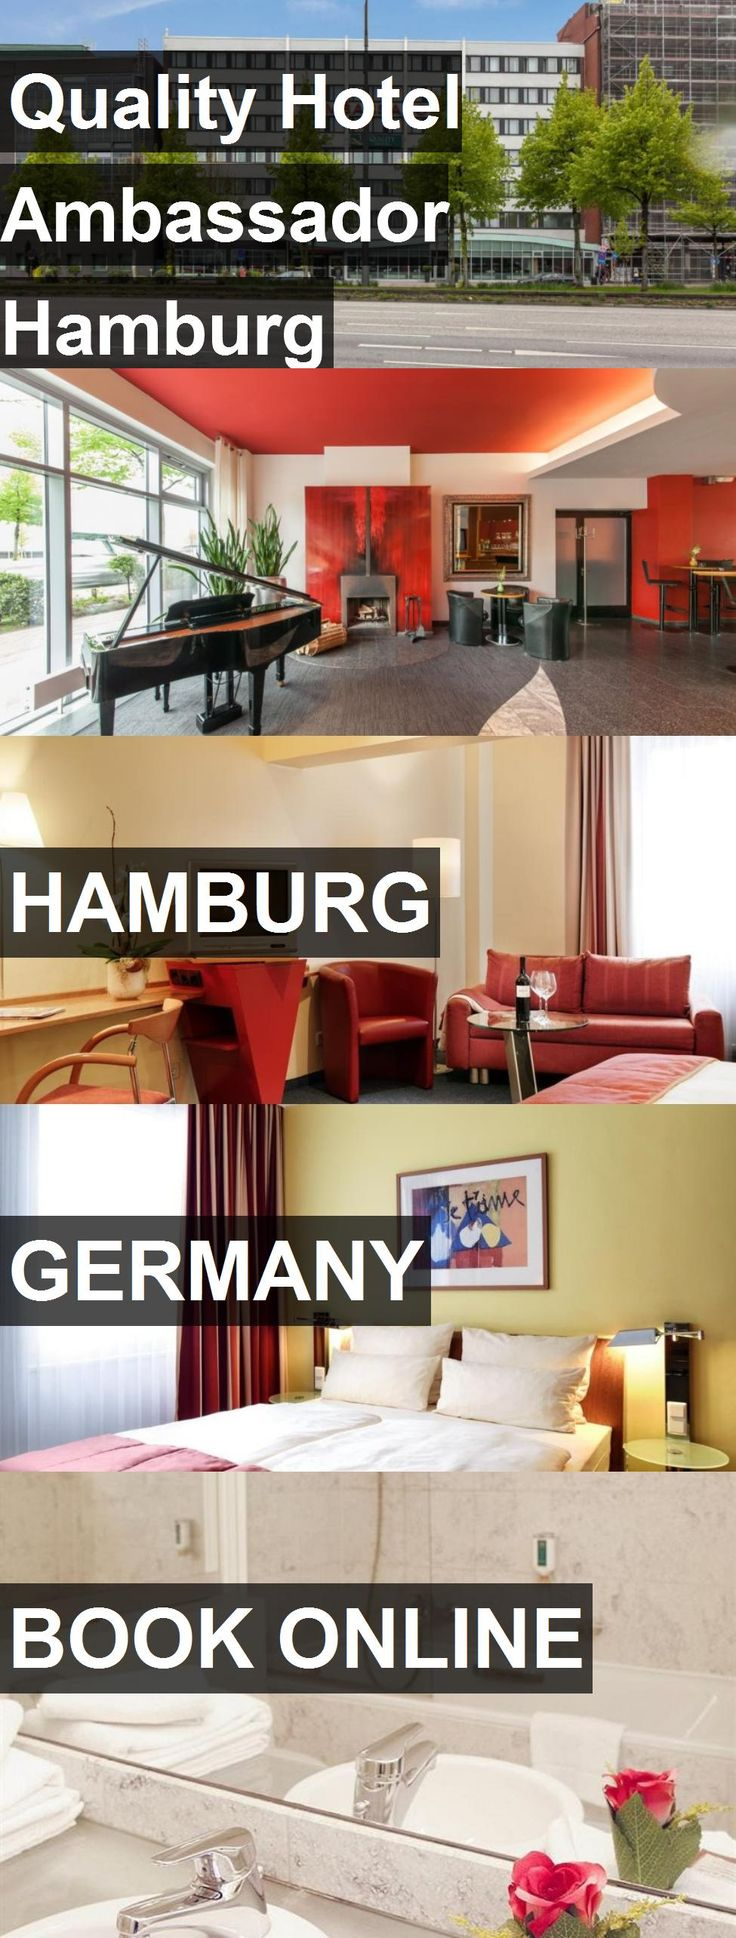 Hotel Quality Hotel Ambassador Hamburg in Hamburg, Germany. For more information, photos, reviews and best prices please follow the link. #Germany #Hamburg #QualityHotelAmbassadorHamburg #hotel #travel #vacation